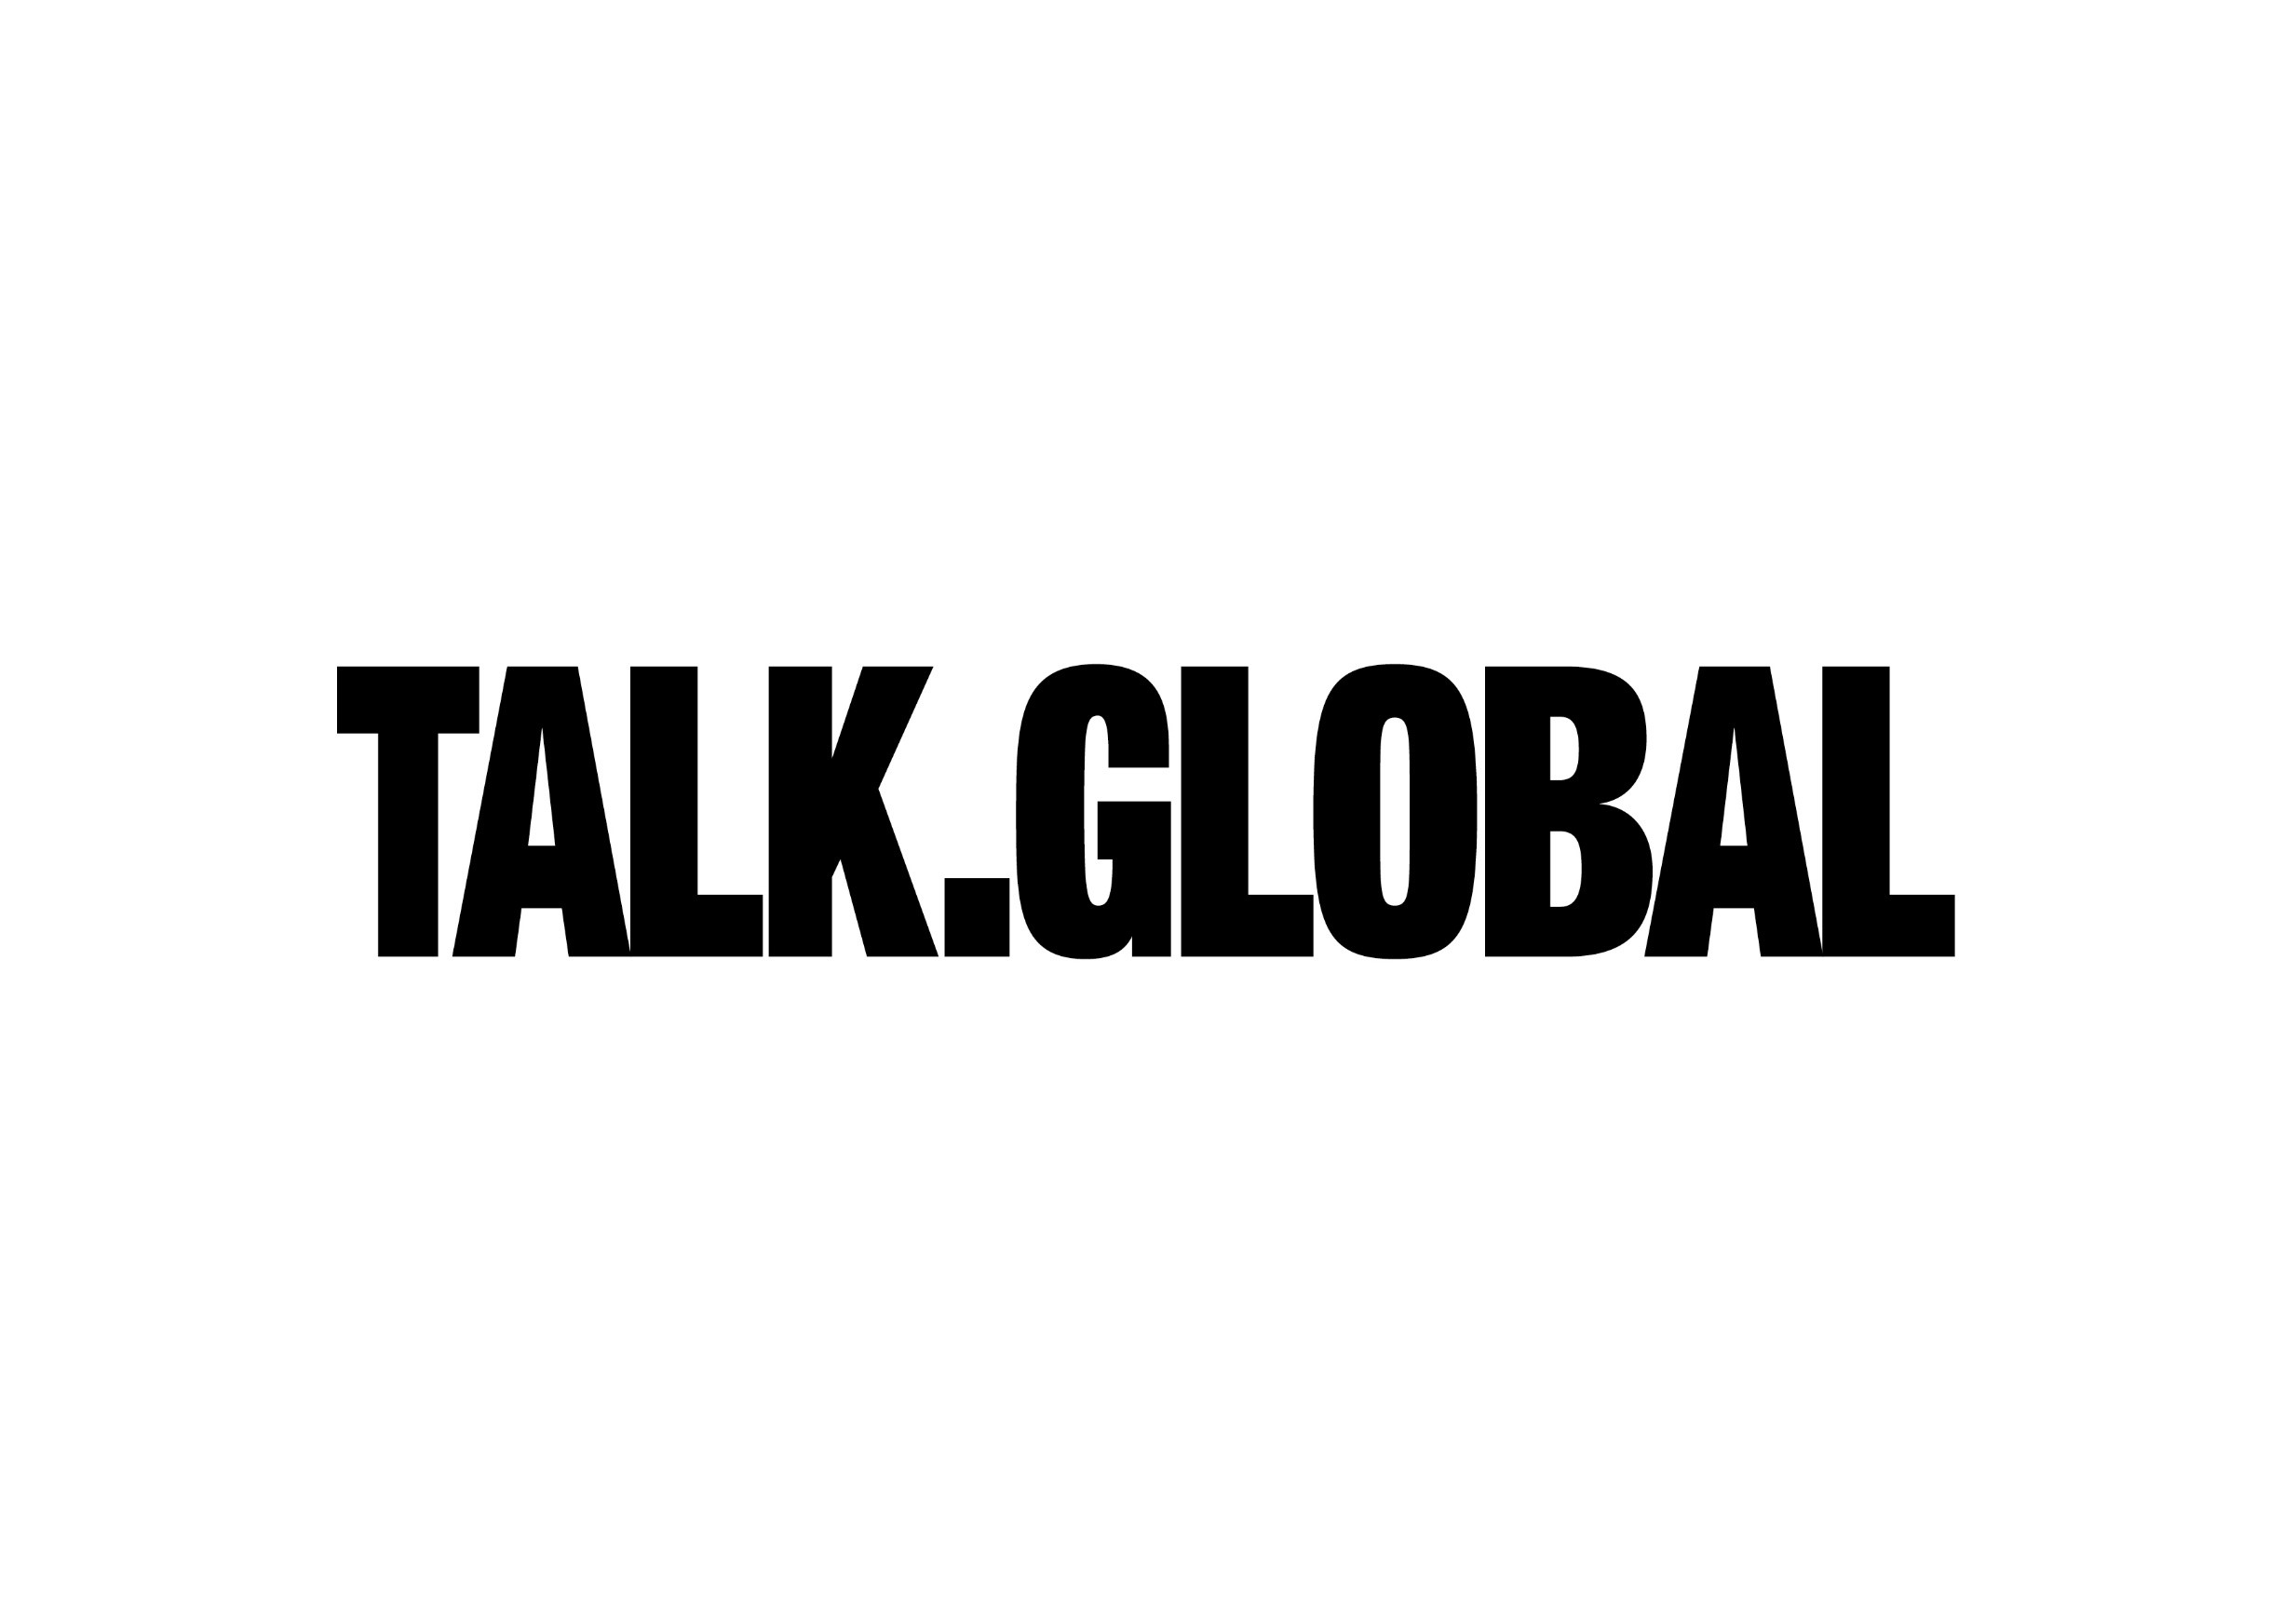 talk_global_logo_non_bleed.jpg